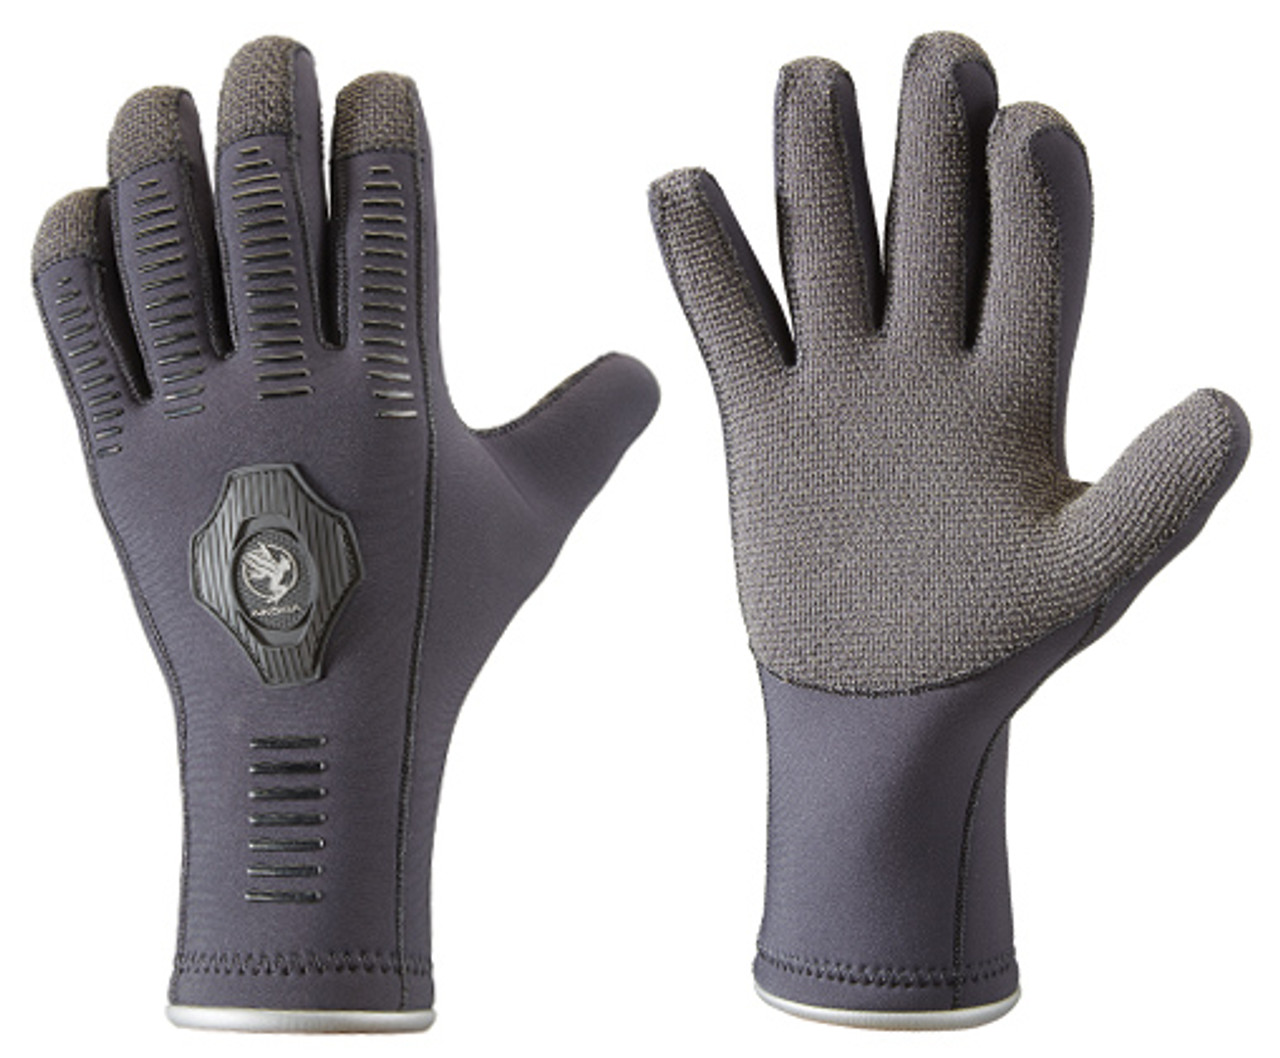 Akona ArmorTex 5mm Kevlar Gloves 2016